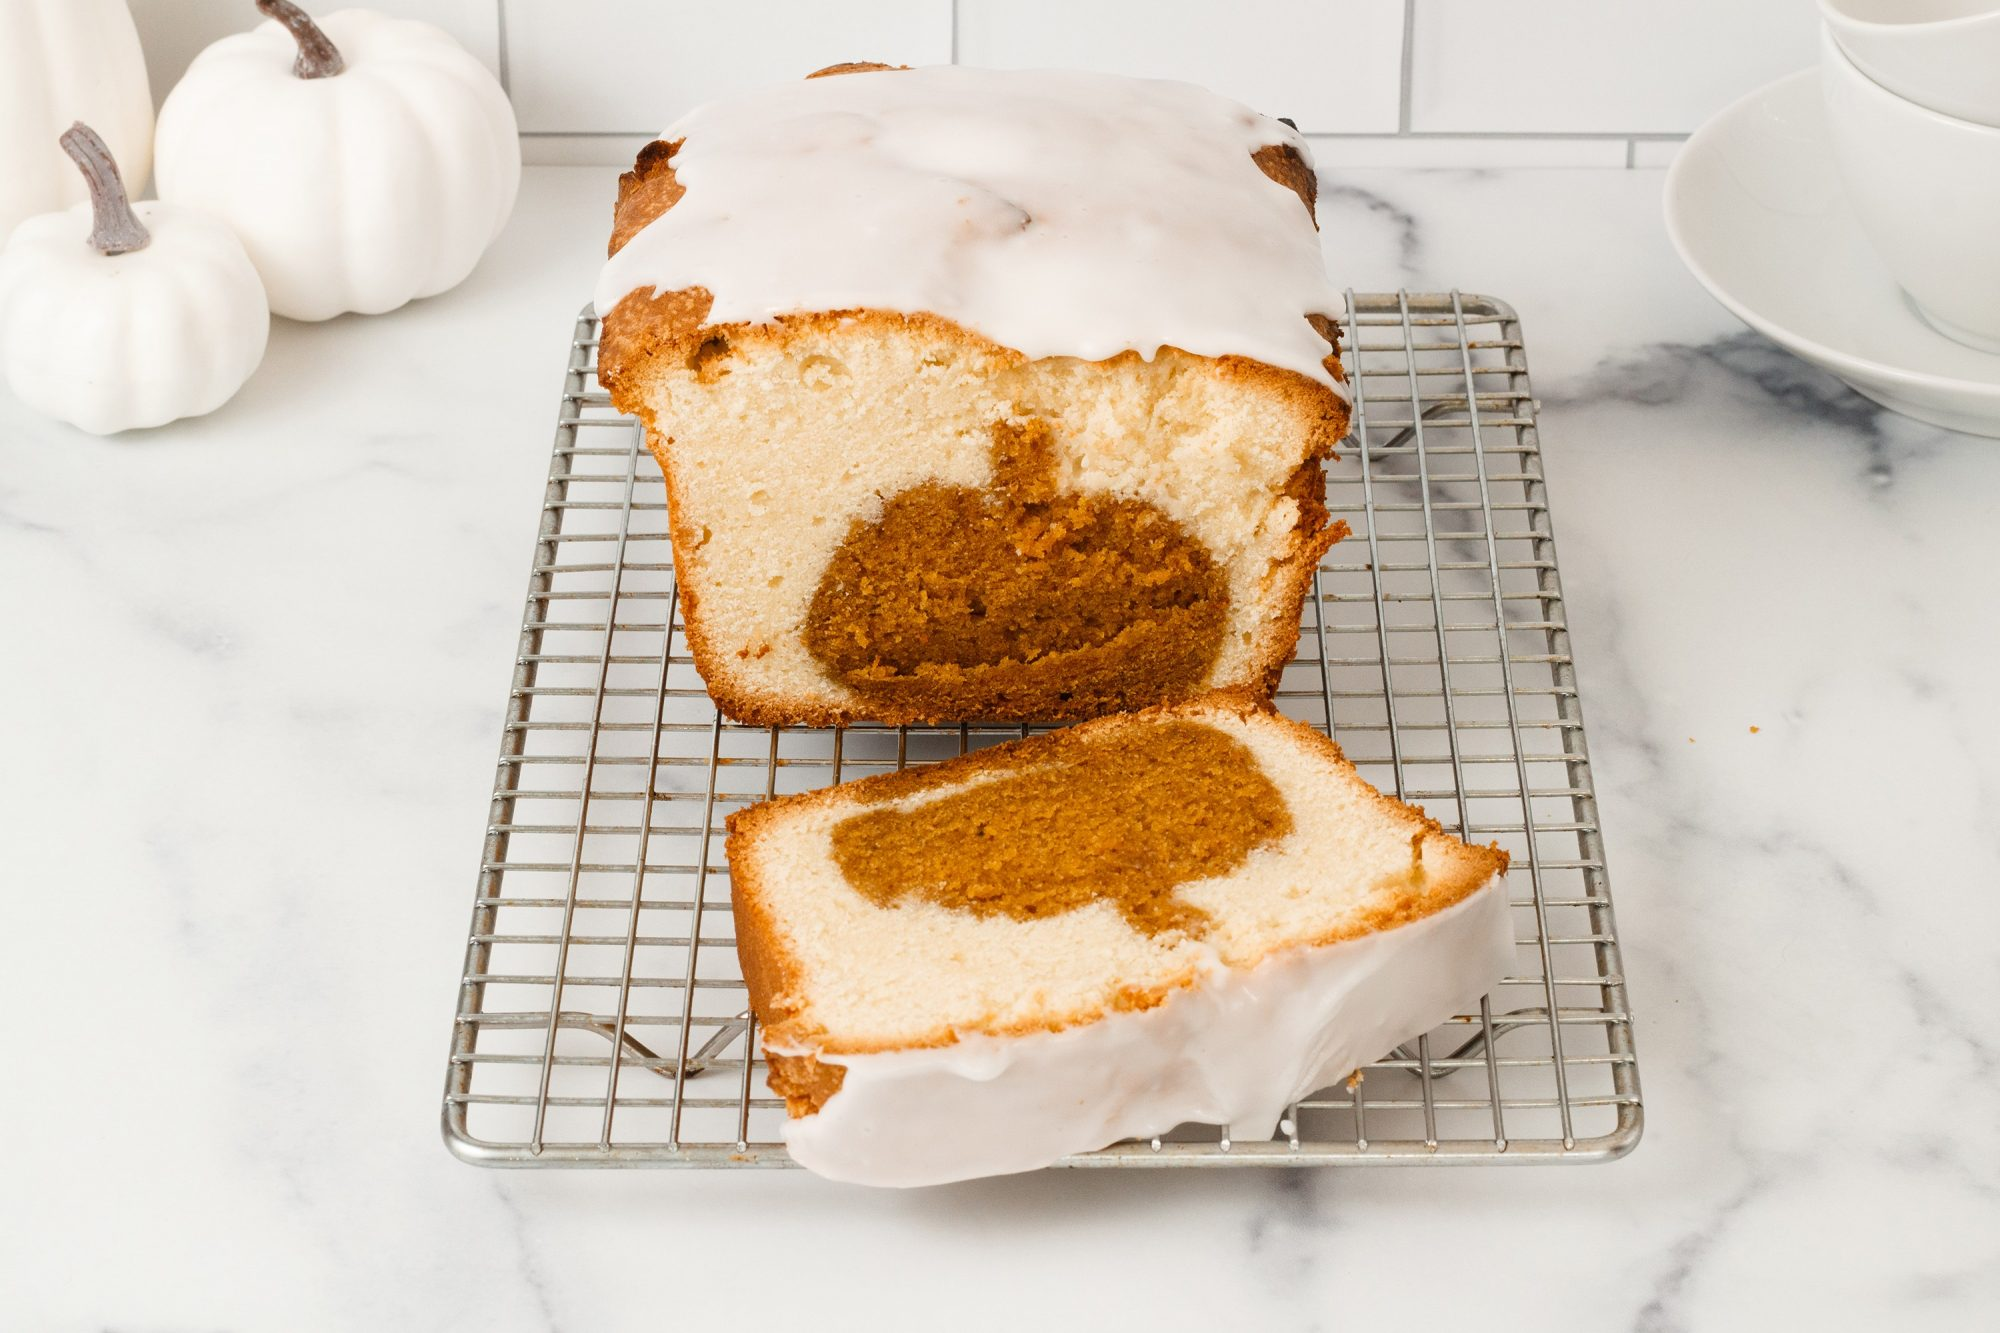 loaf of pumpkin spice surprise cake topped with confectioner's sugar glaze and sliced to revel a hidden pumpkin-shaped pumpkin spice cake baked into it.